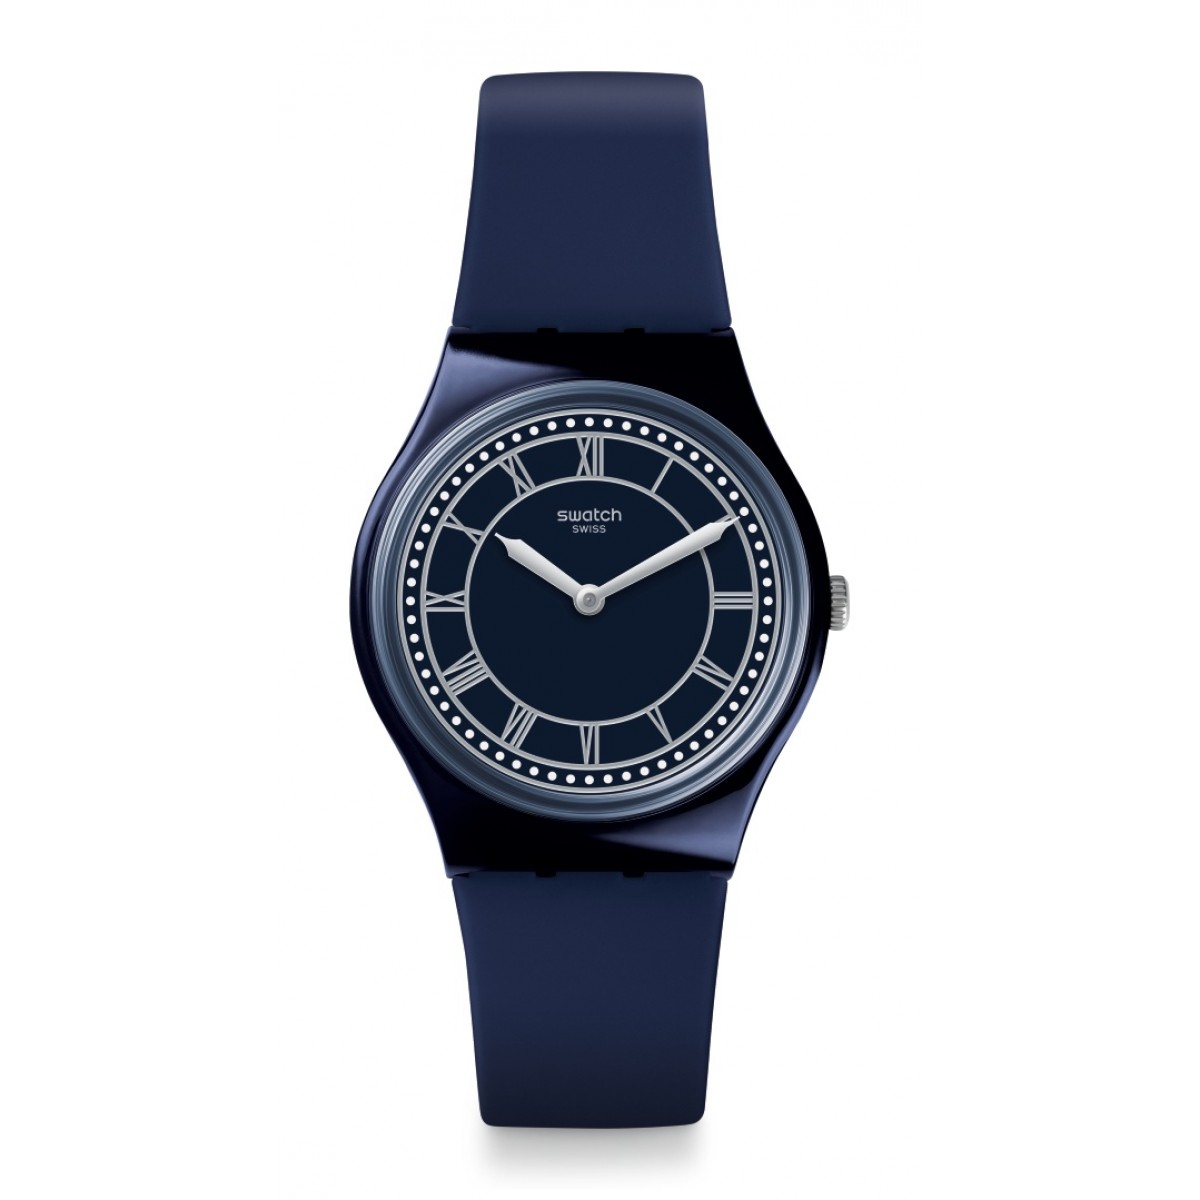 Genskie_chasy_Swatch (45)